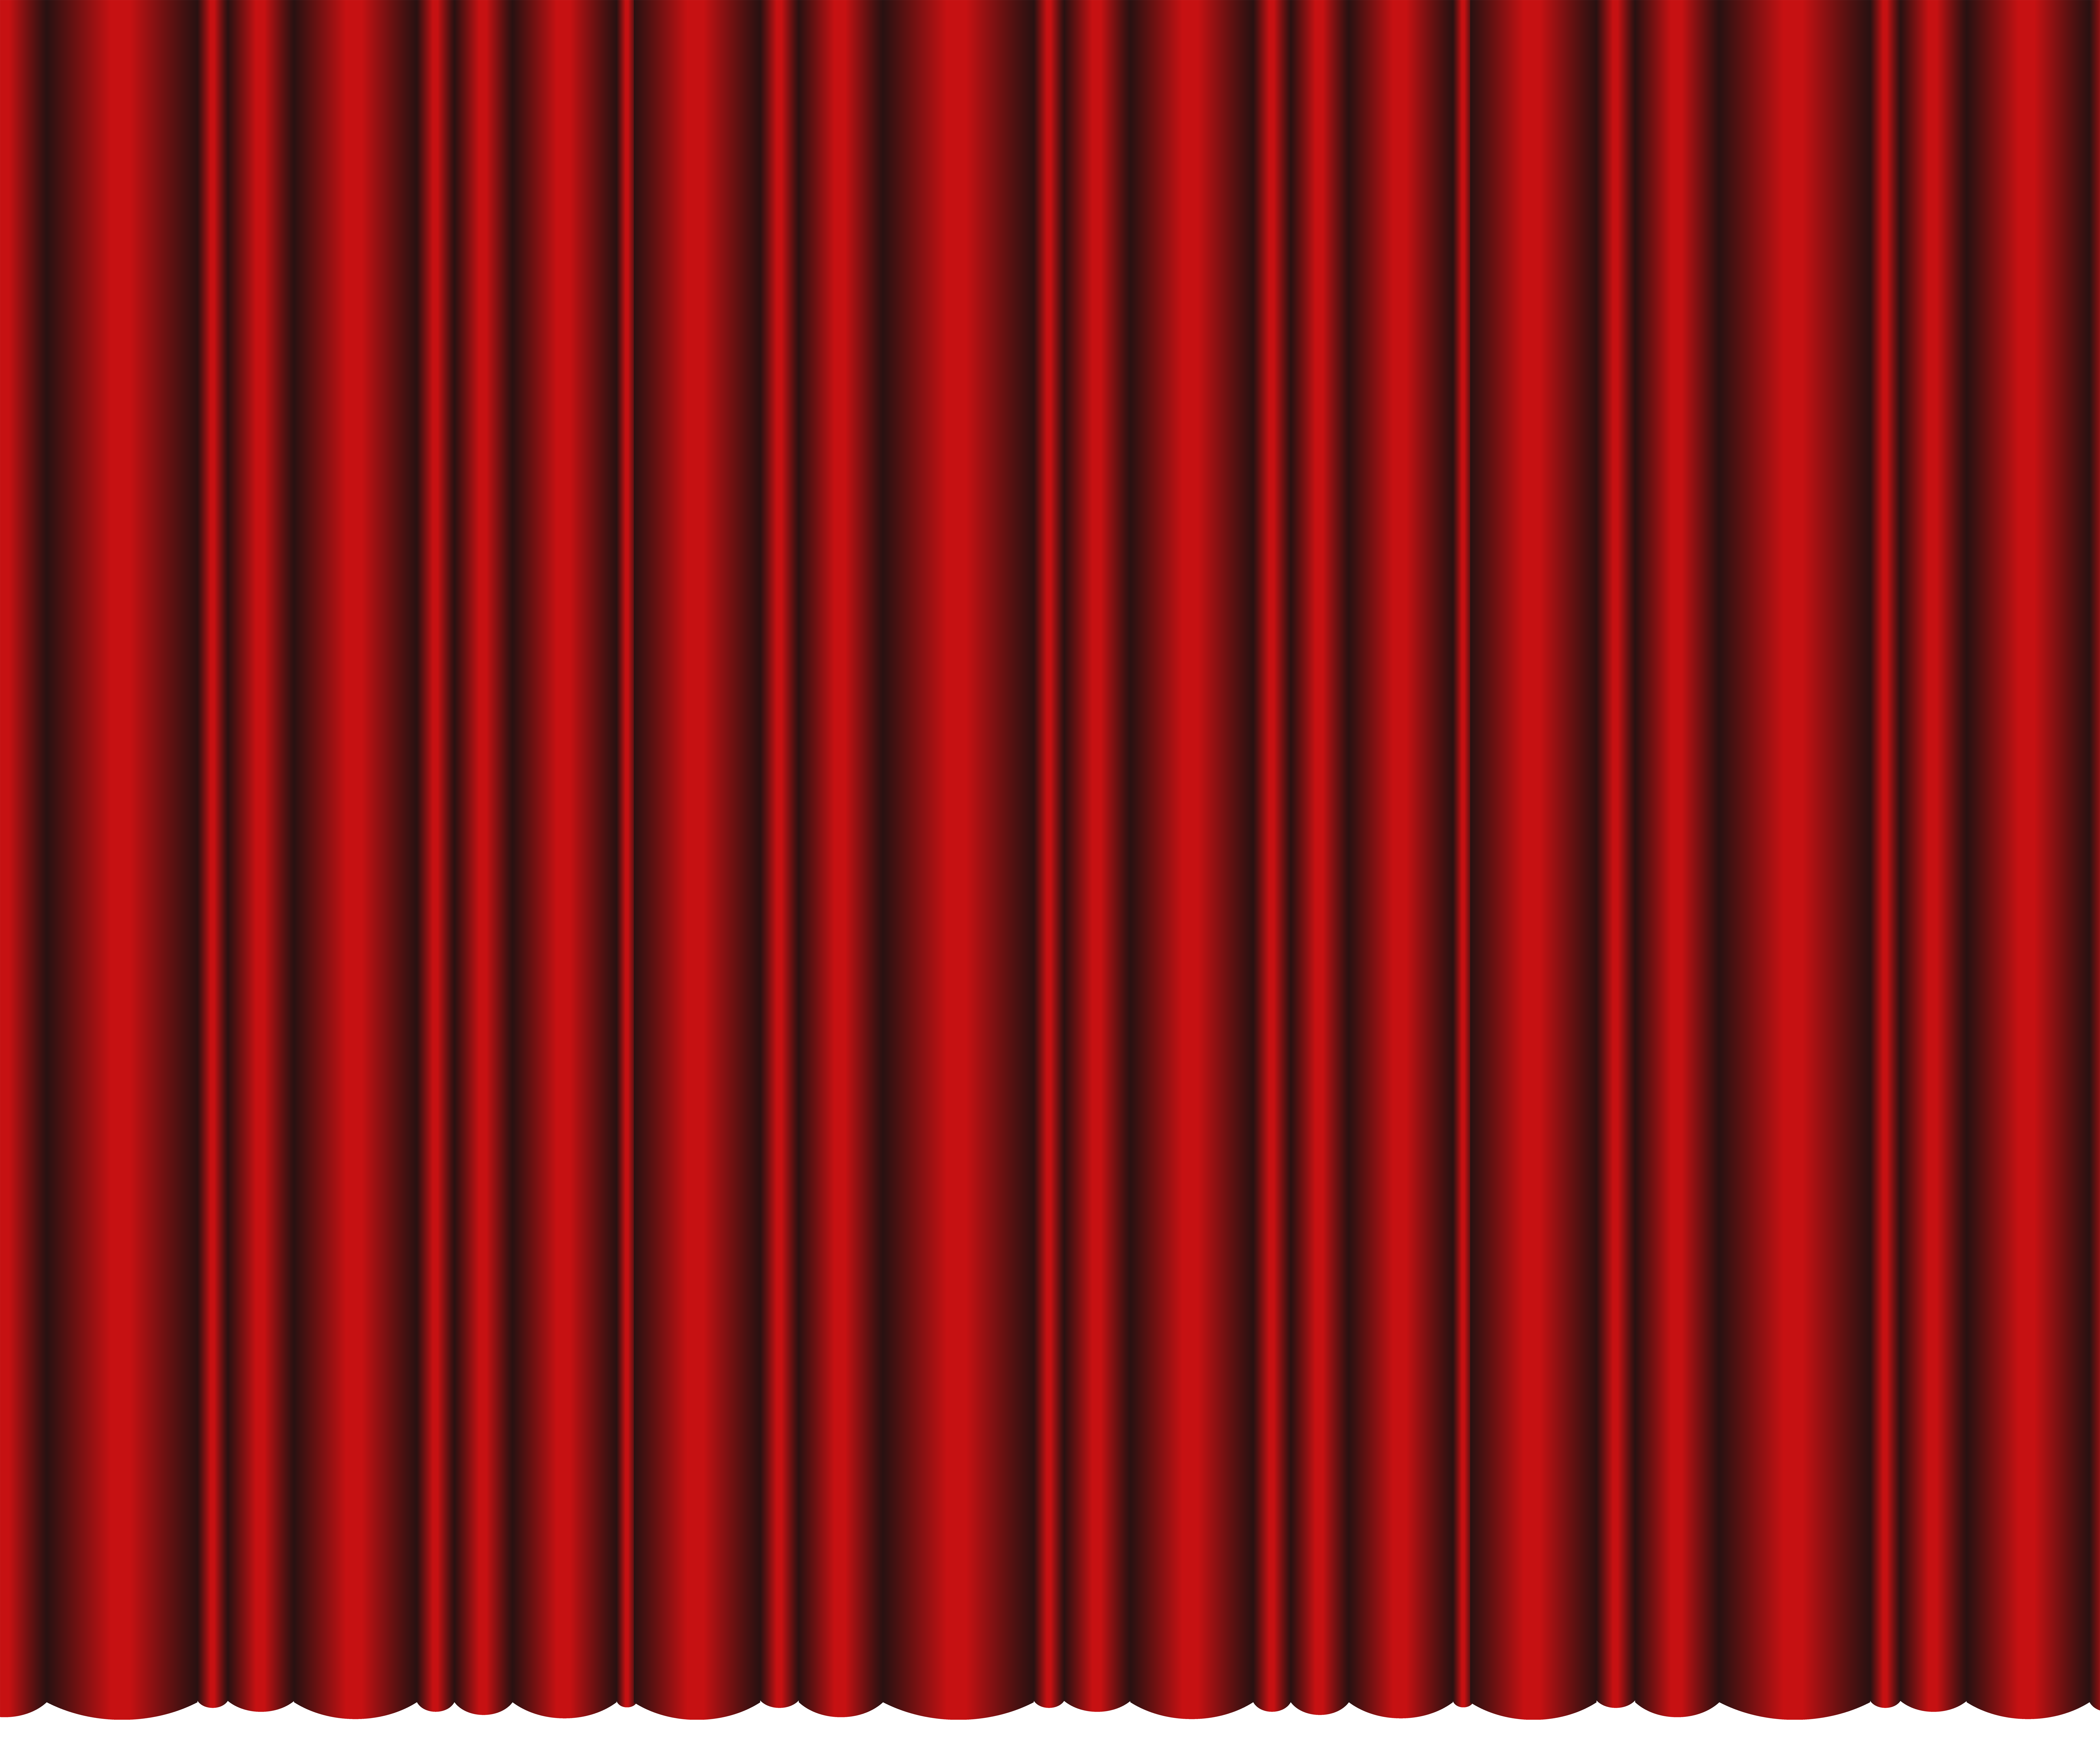 Closed Theater Curtains Red Transparent PNG Clip Art Image.